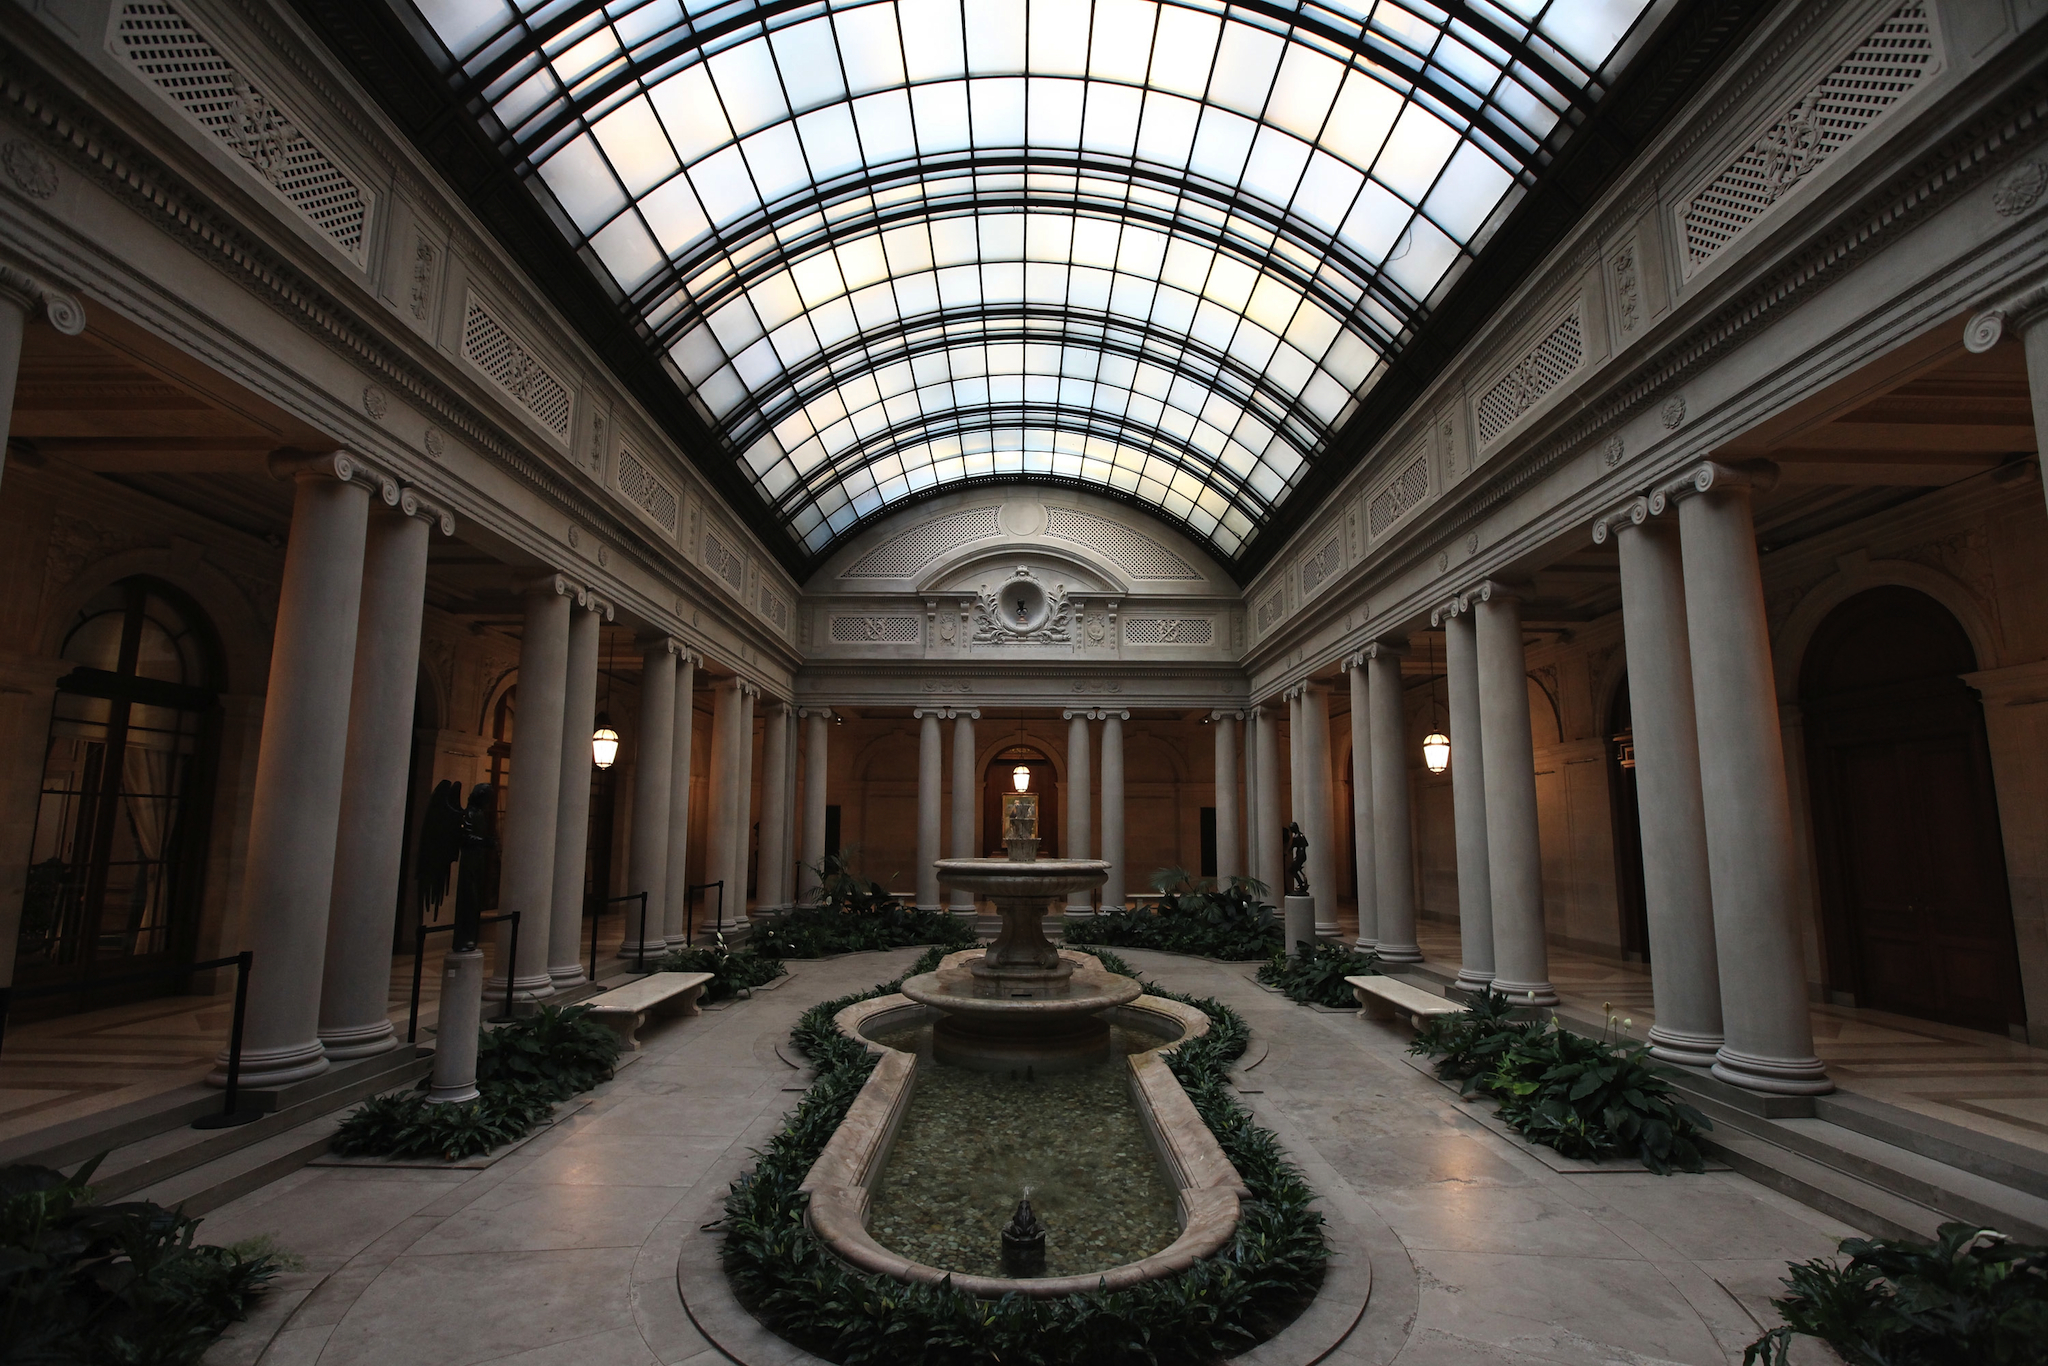 Hear live classical music at the Frick Collection